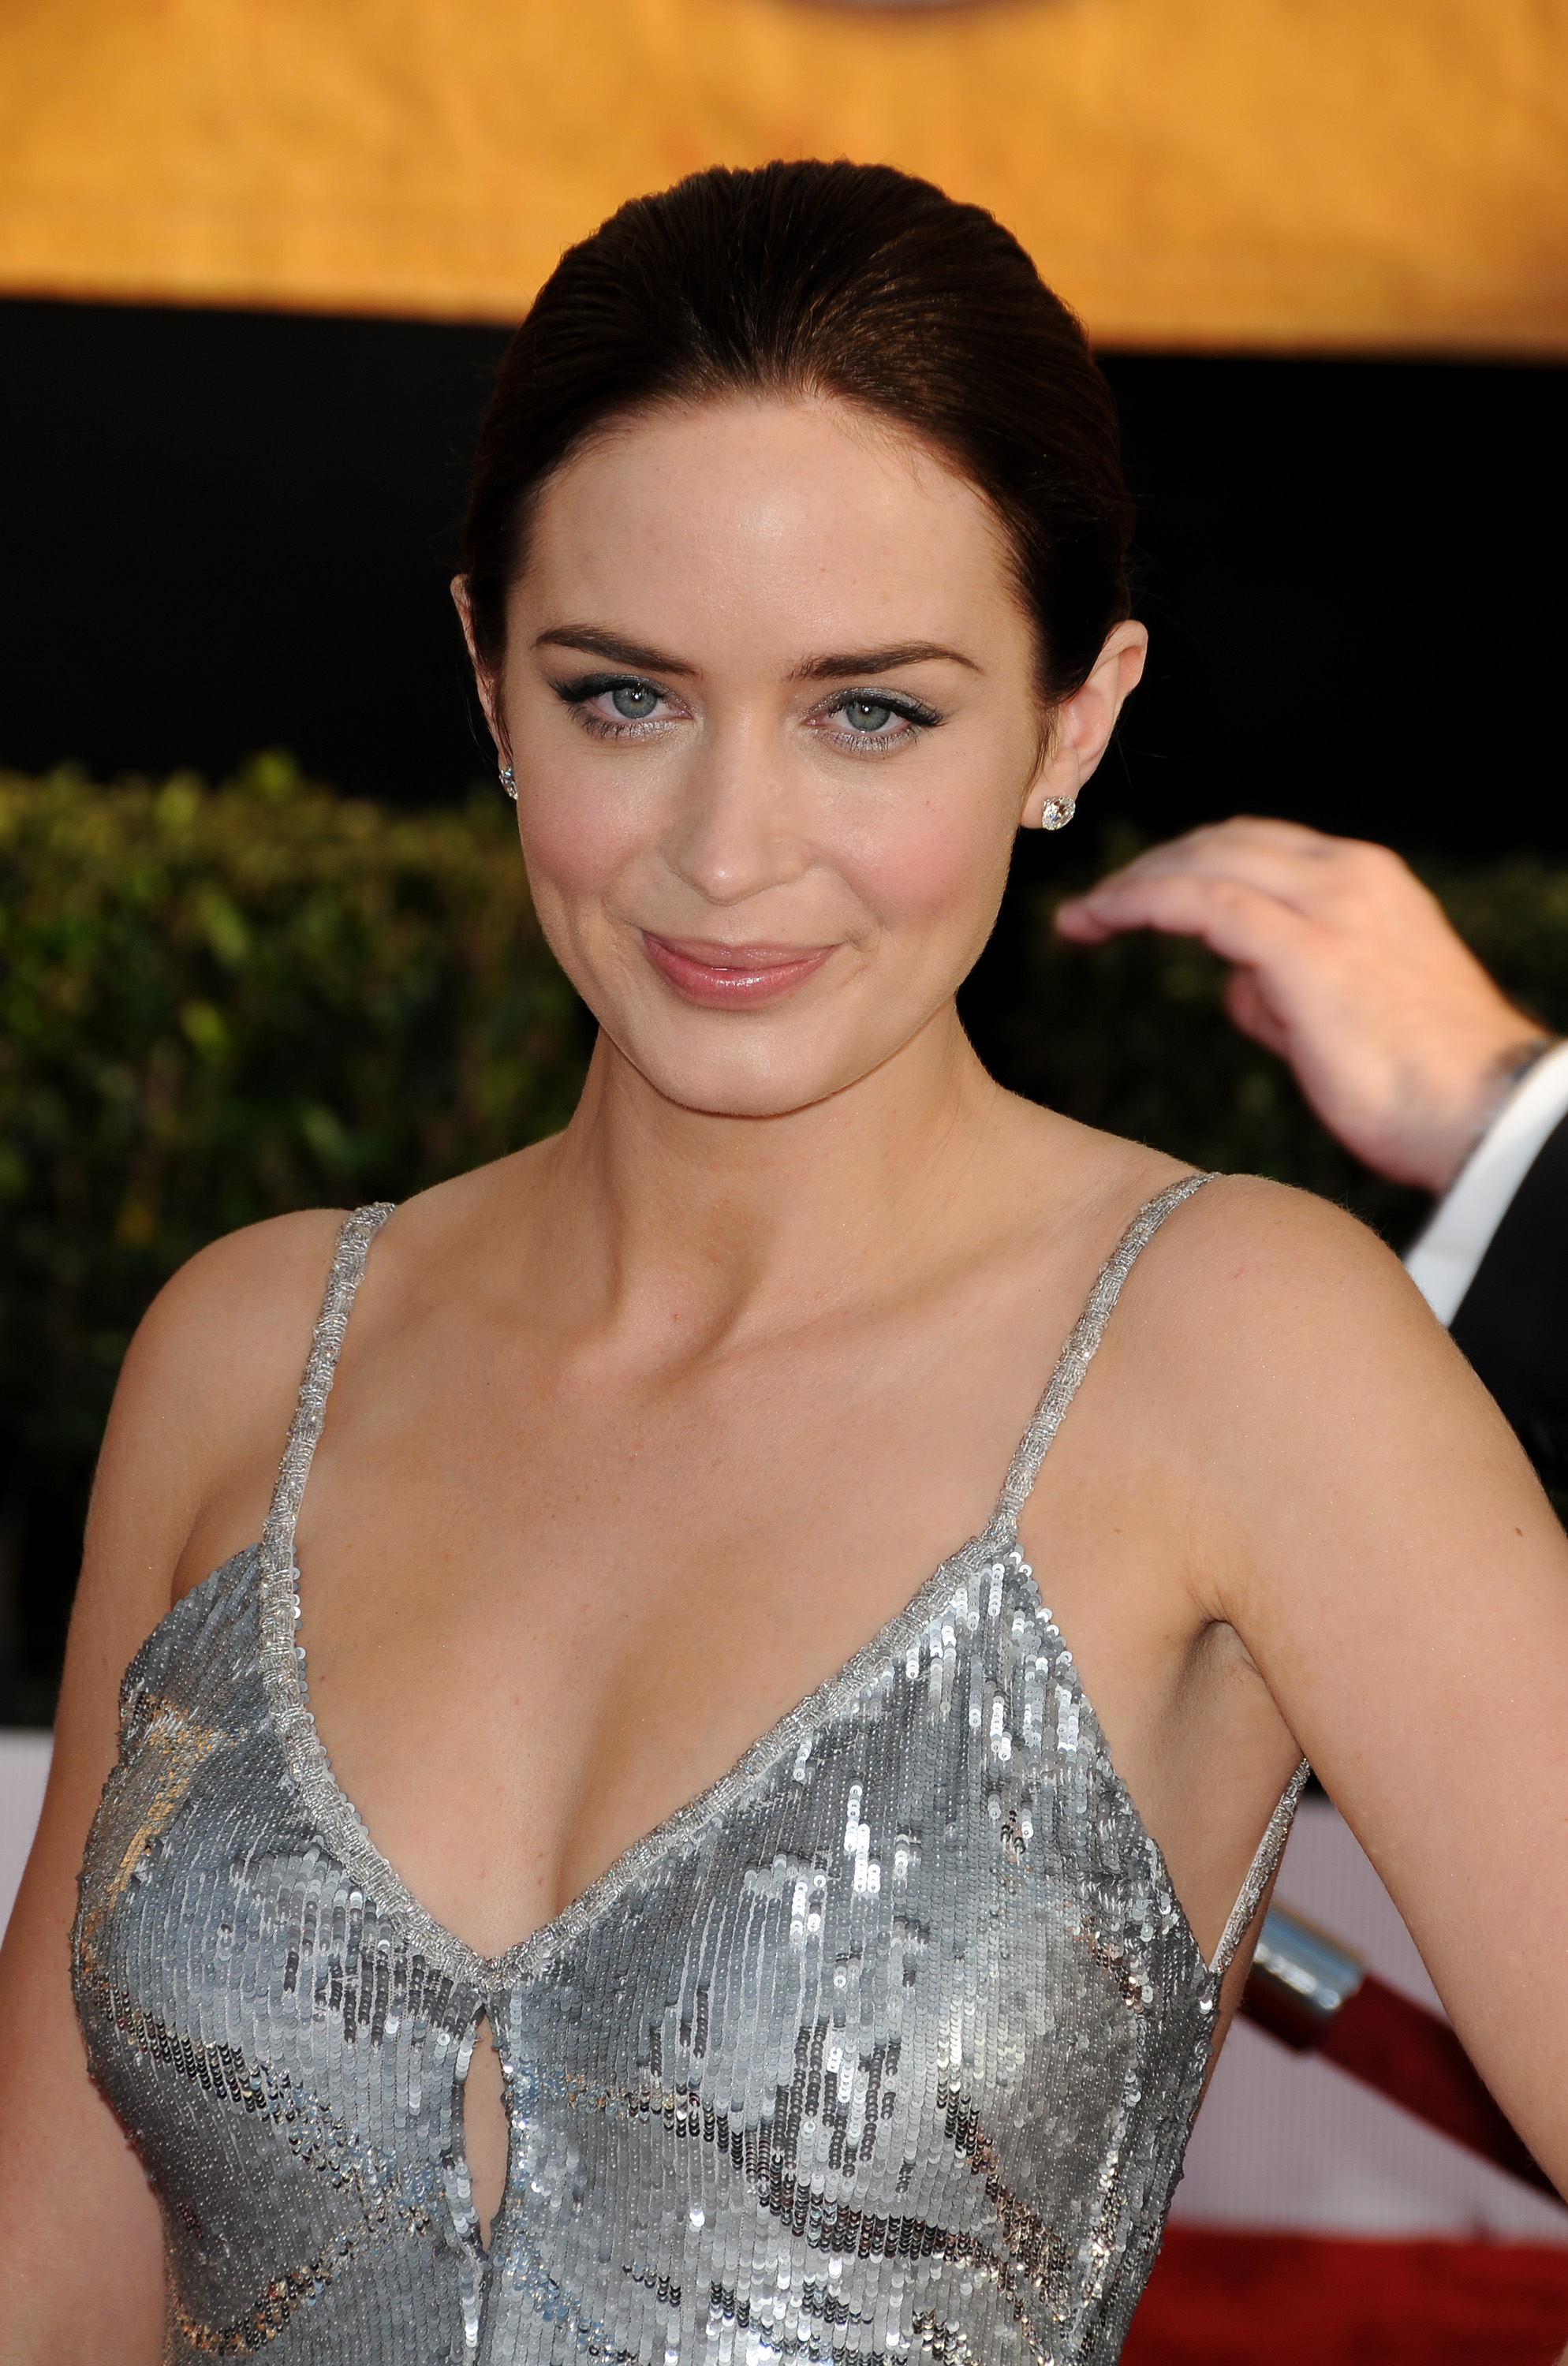 January 25, 2009 Los Angeles, Ca. Emily Blunt 15th Annual Screen Actors Guild Awards Held at the Shrine Auditorium © LuMar Jr. / AFF-USA.COM